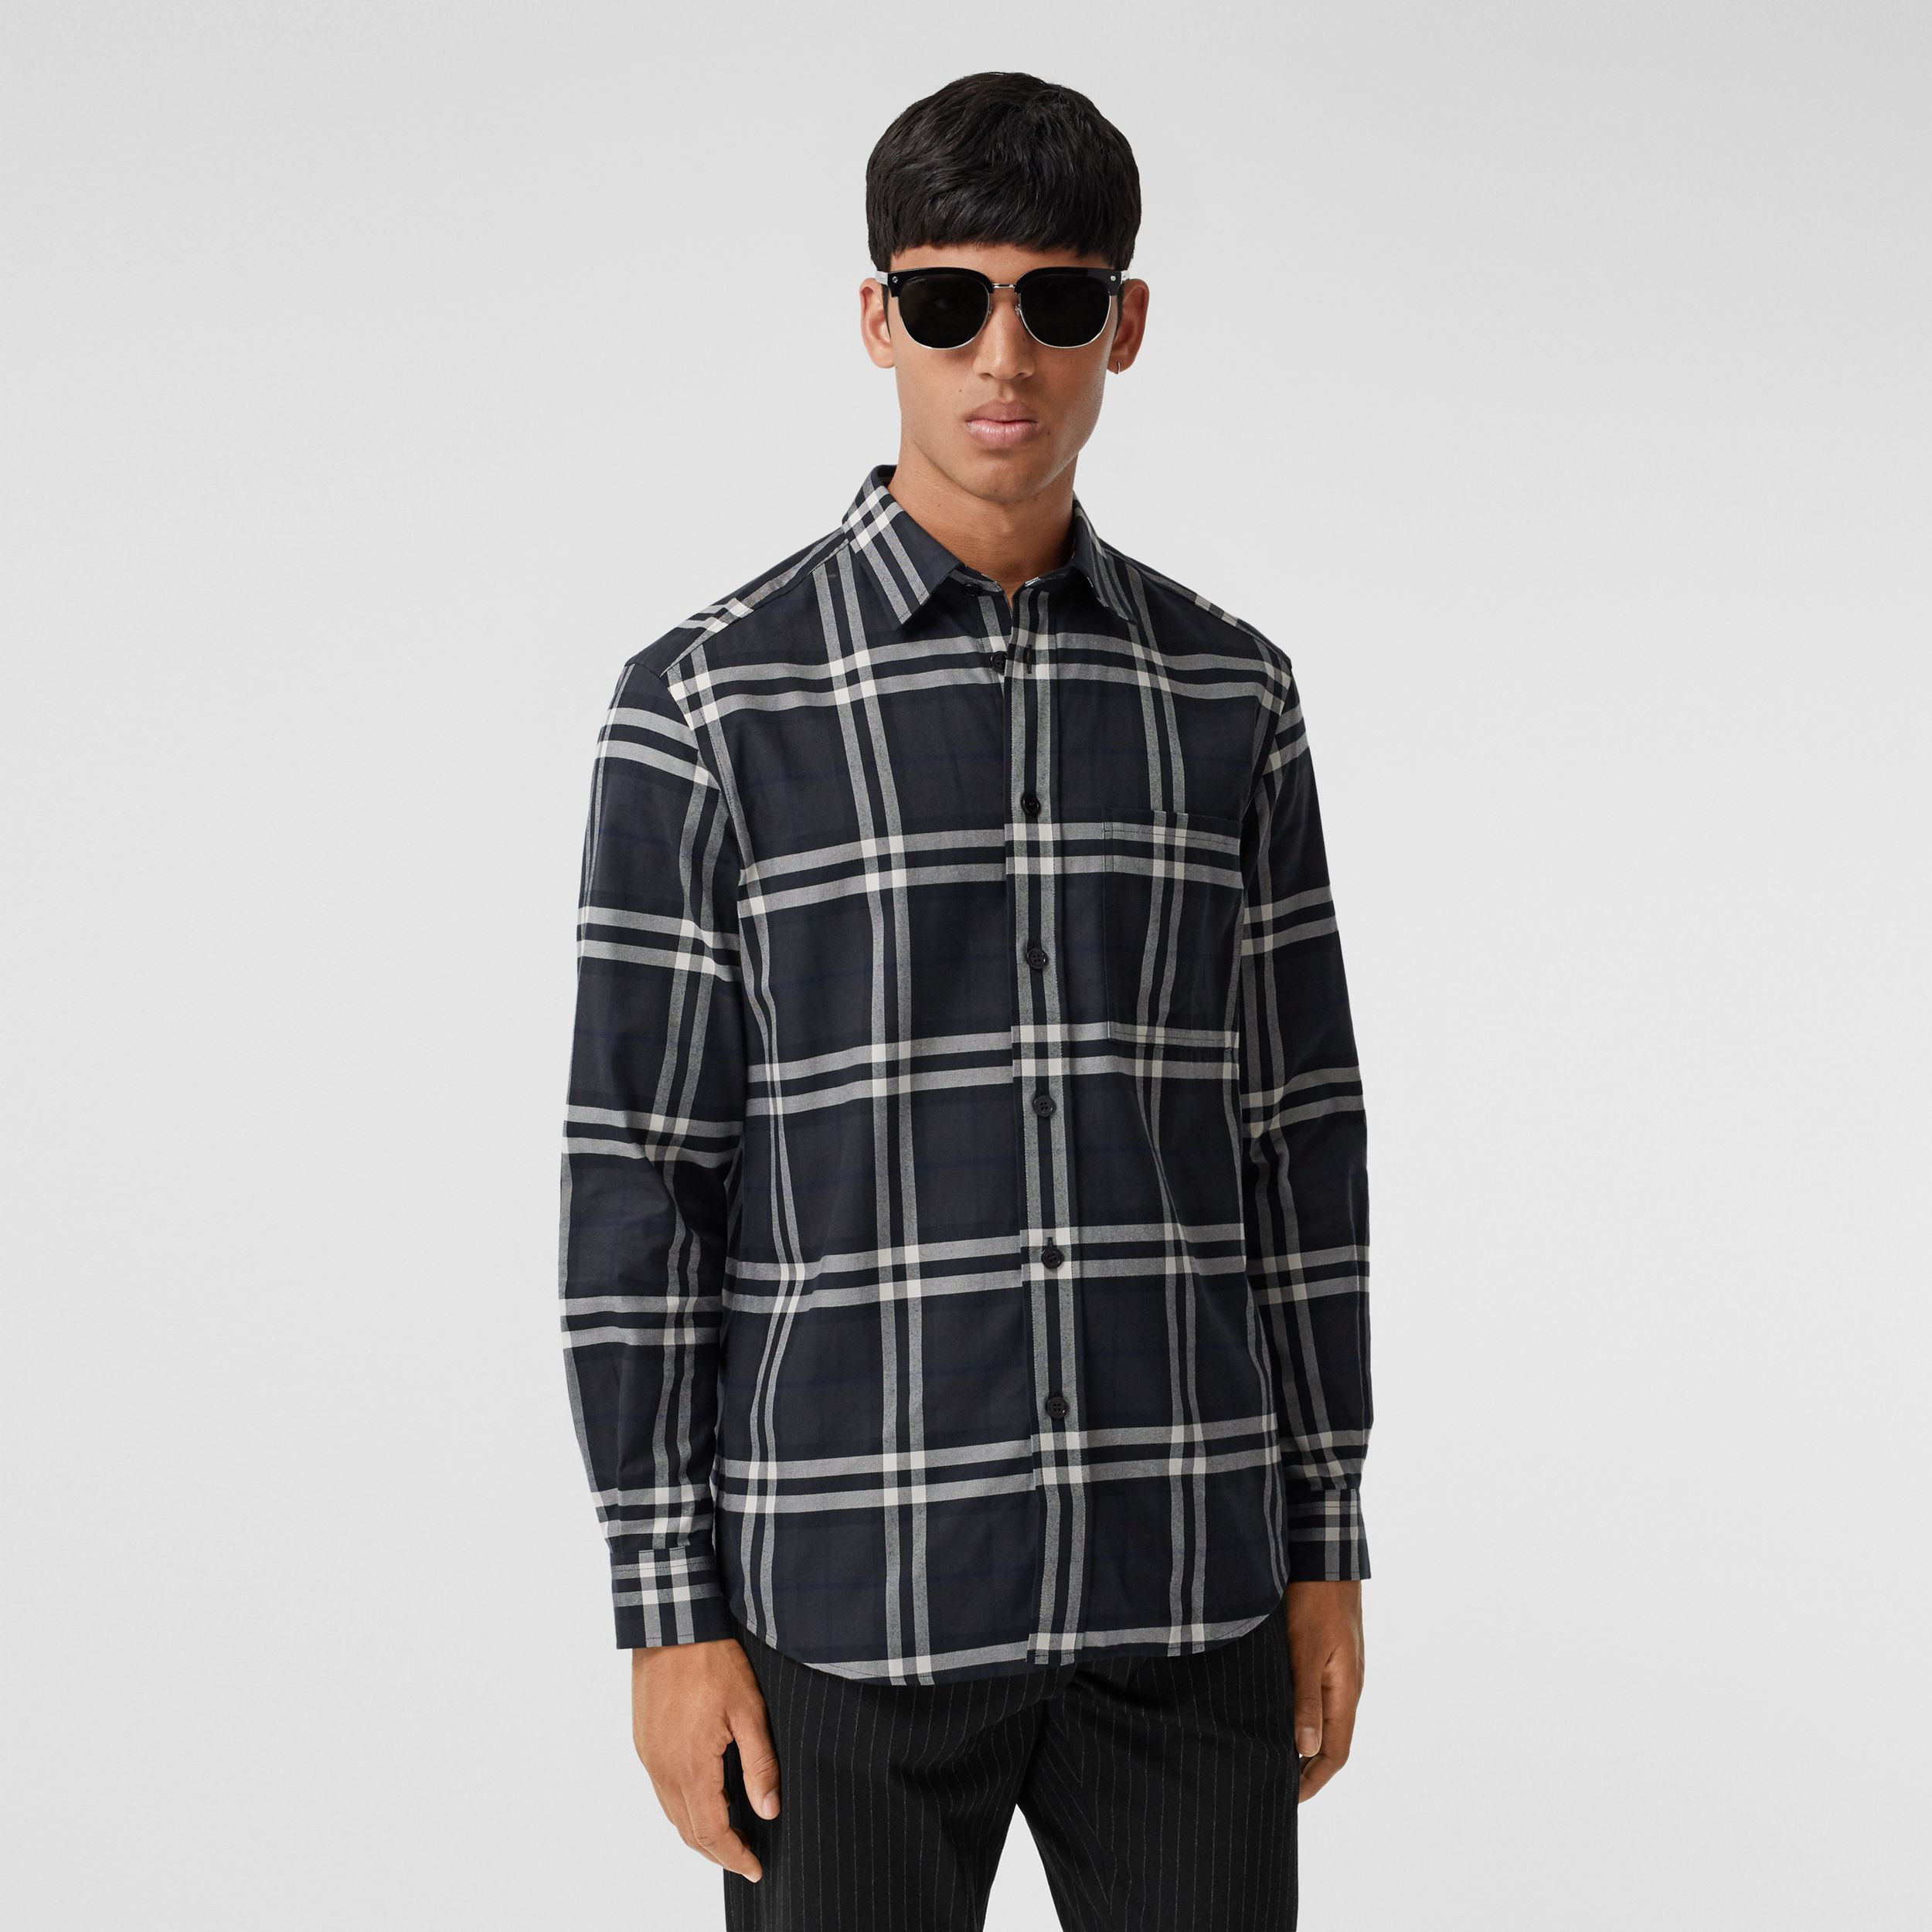 Vintage Check Cotton Flannel Shirt in Charcoal - Men | Burberry - 1